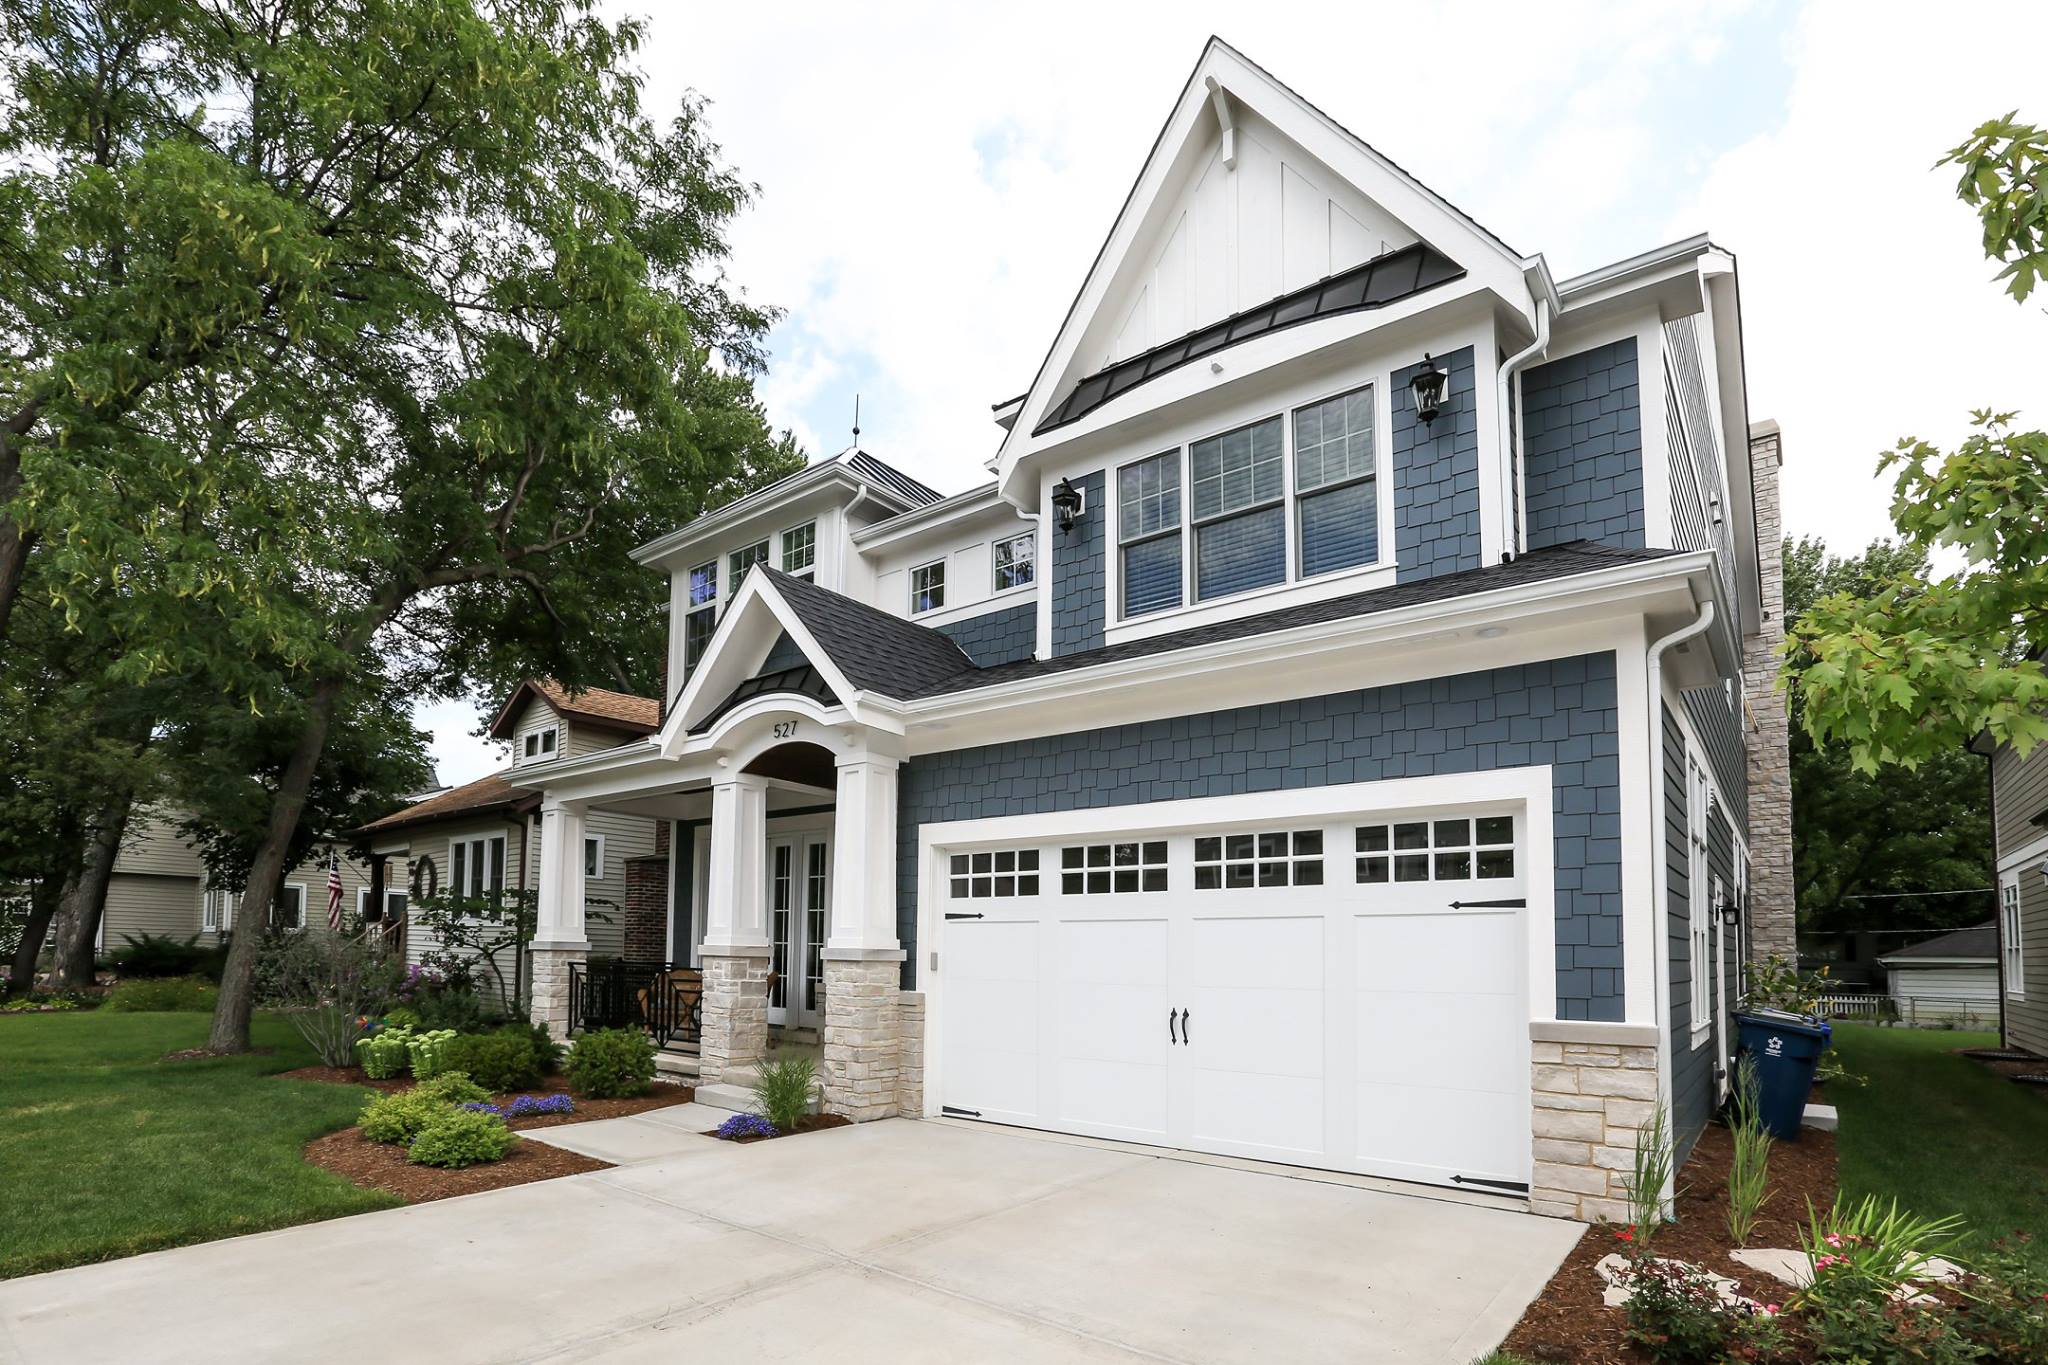 Blue vinyl siding colors. Light tan stone veneer. White garage door. White trim and wall paneling with blakc metal accent roof. Black shingled roof. Tapered porch columns. Black porch railings.